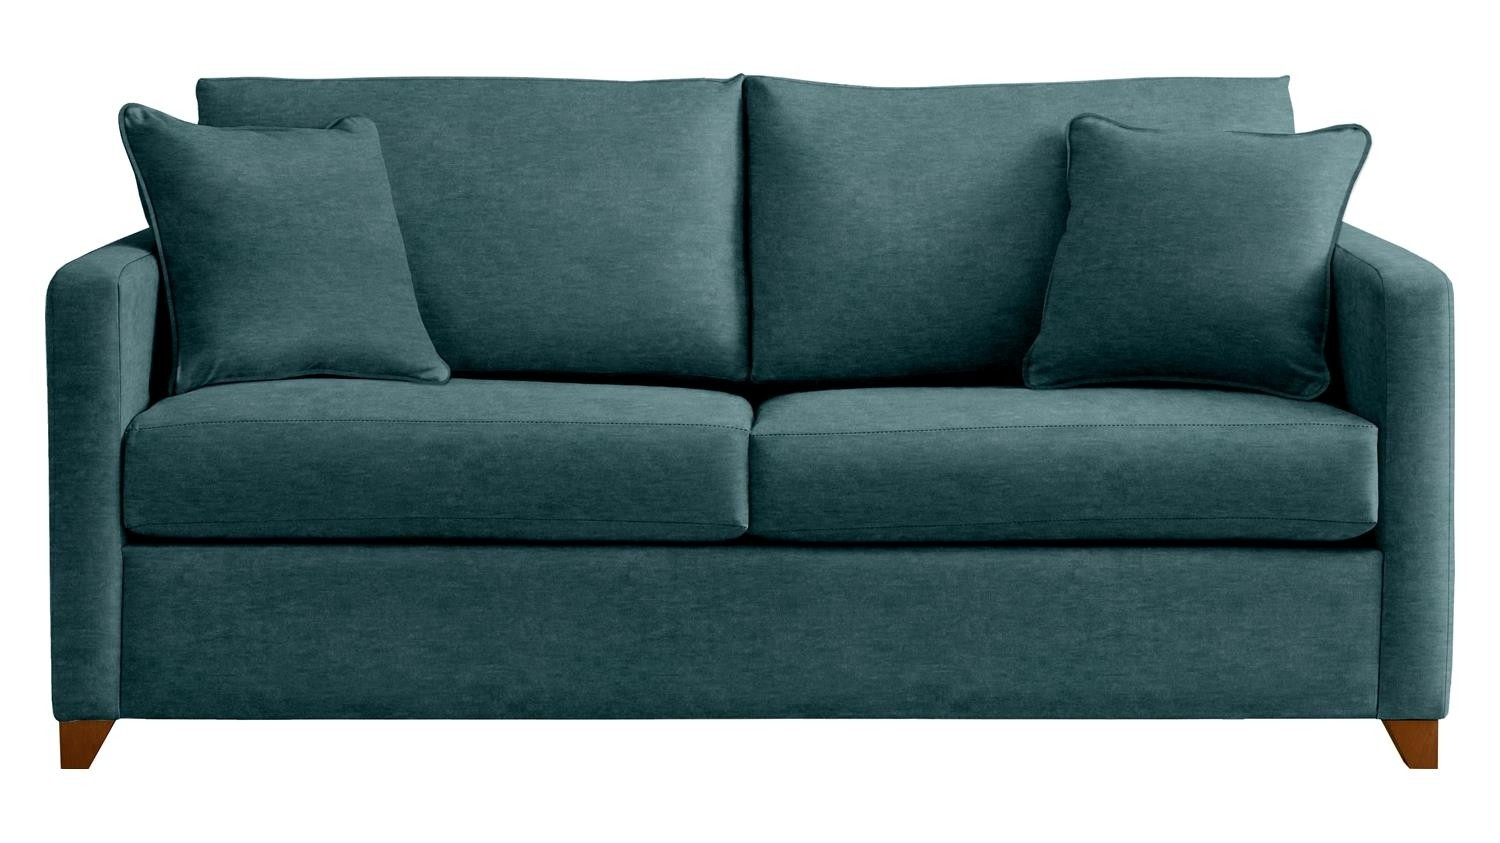 The Foxham 3 Seater Sofa Bed